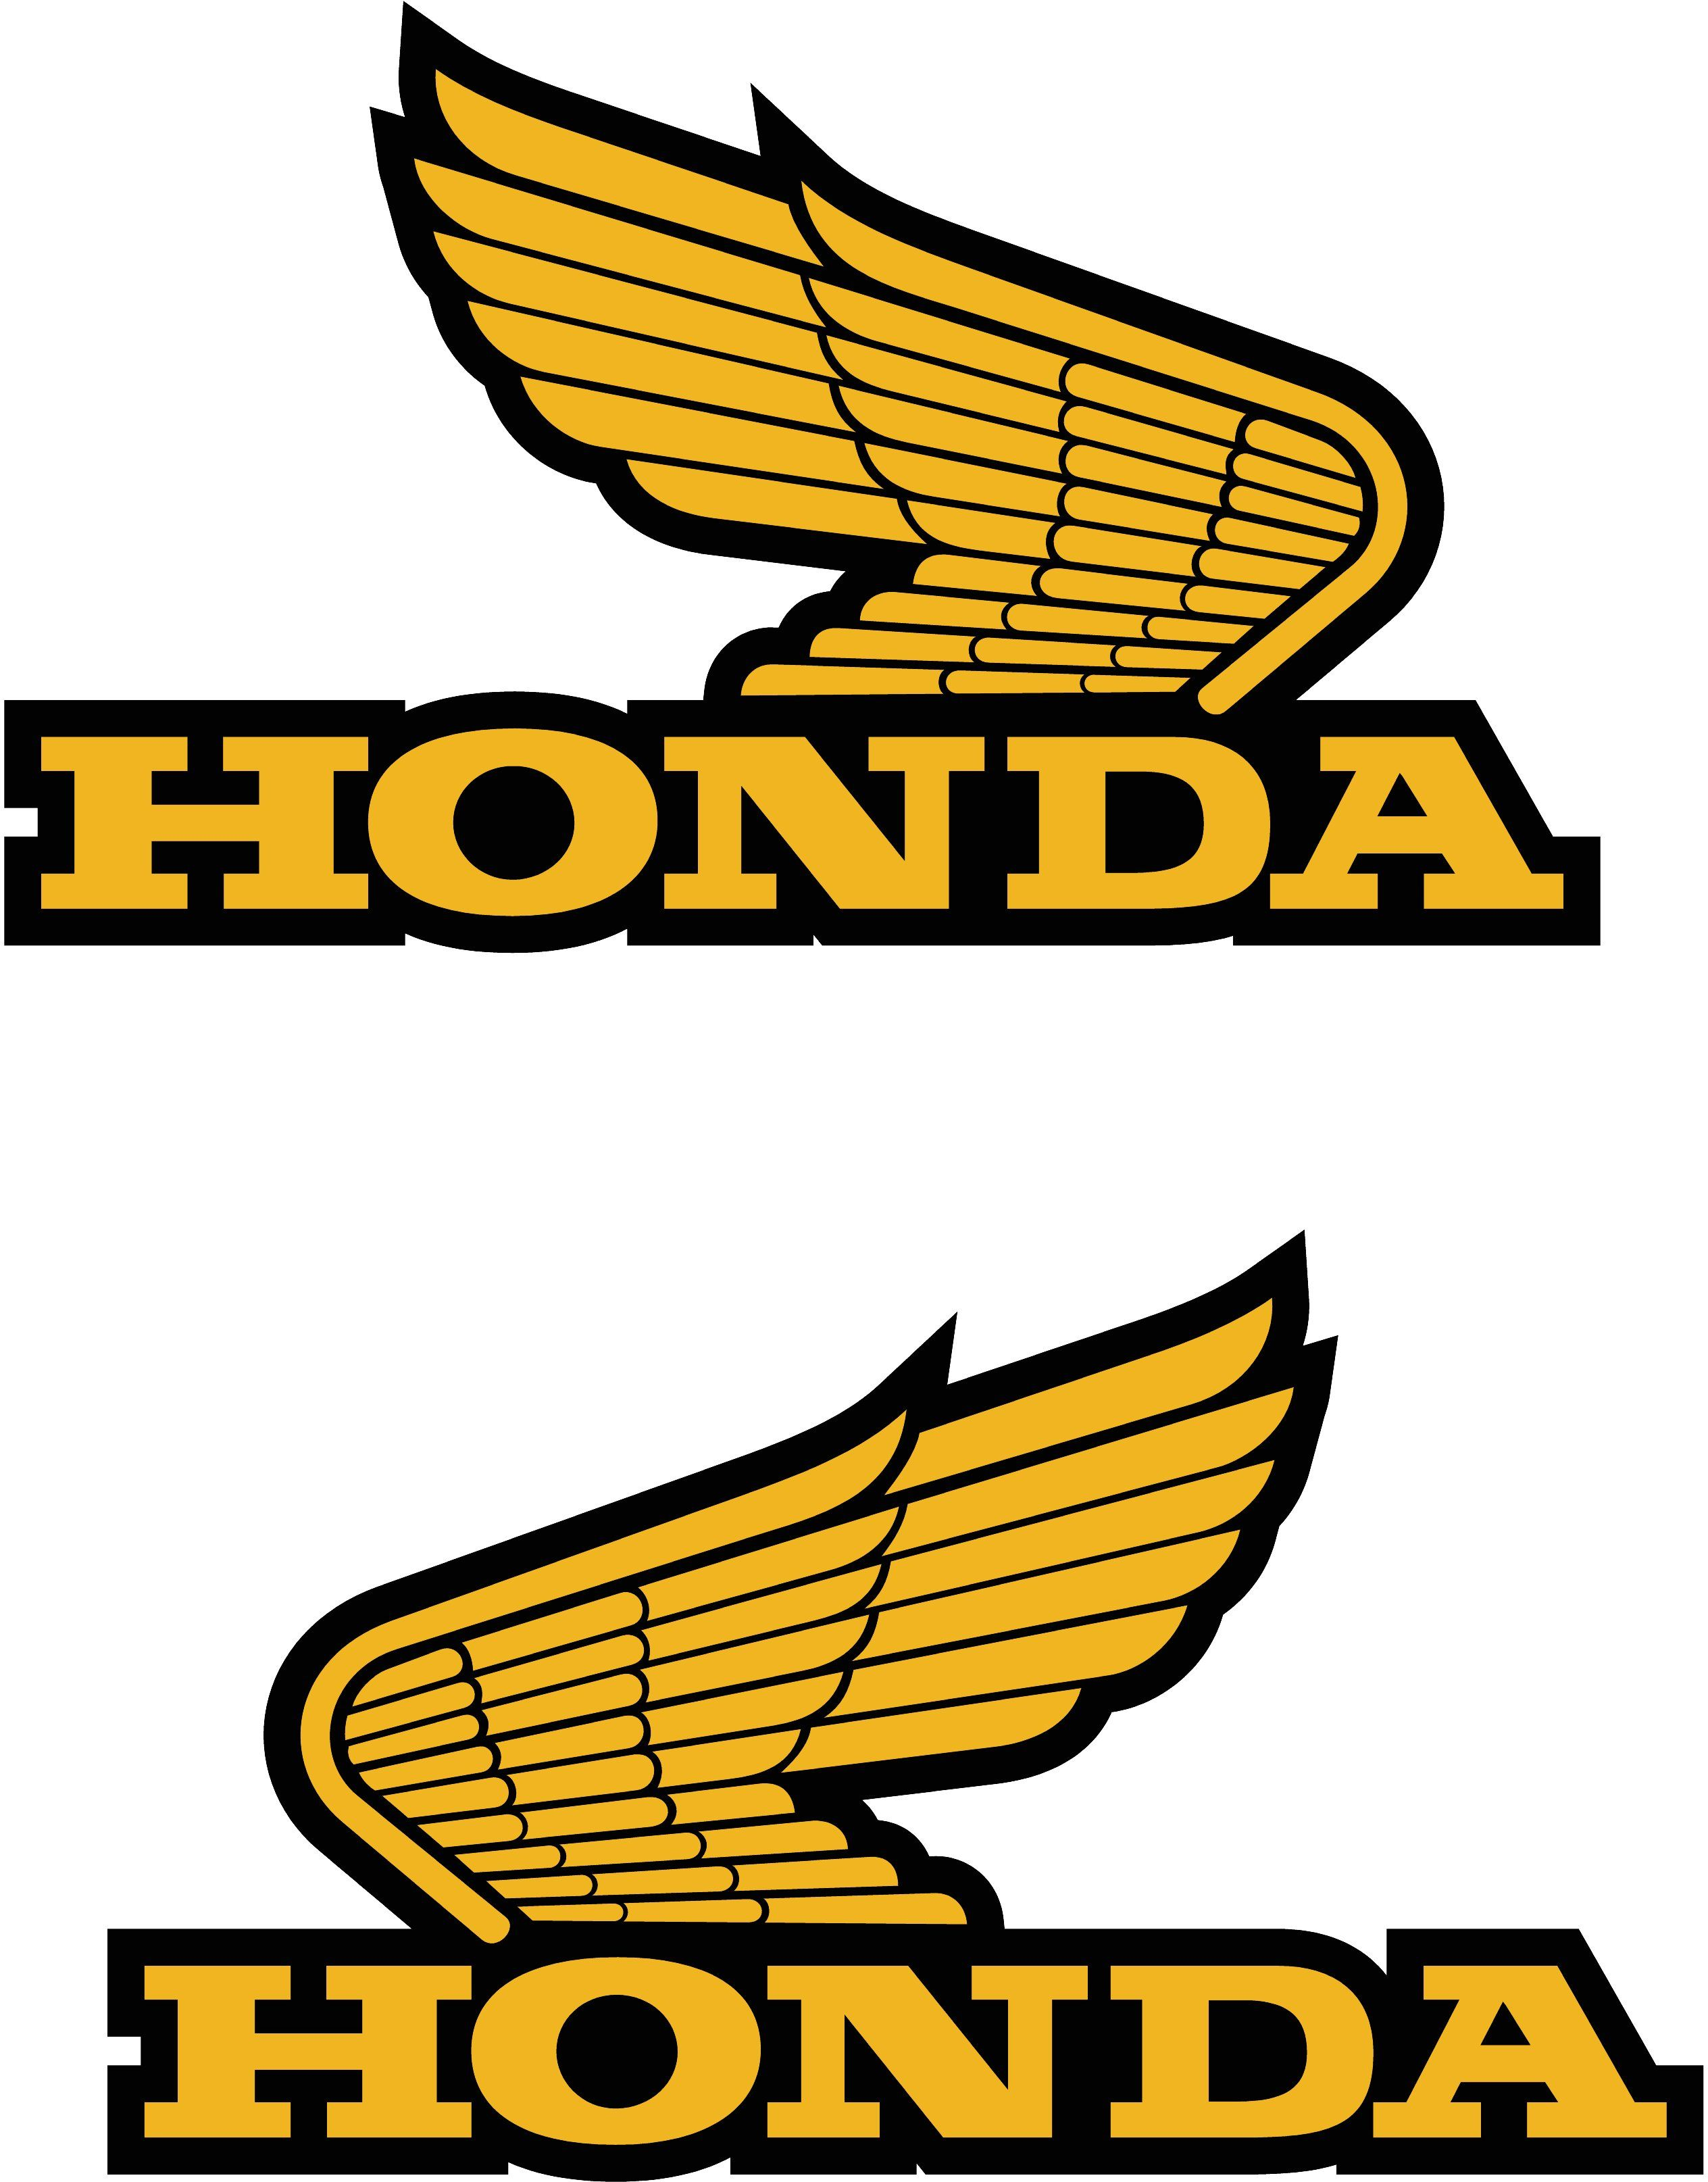 old honda logo 2528 3229 honda is best pinterest honda harley davison and cars. Black Bedroom Furniture Sets. Home Design Ideas